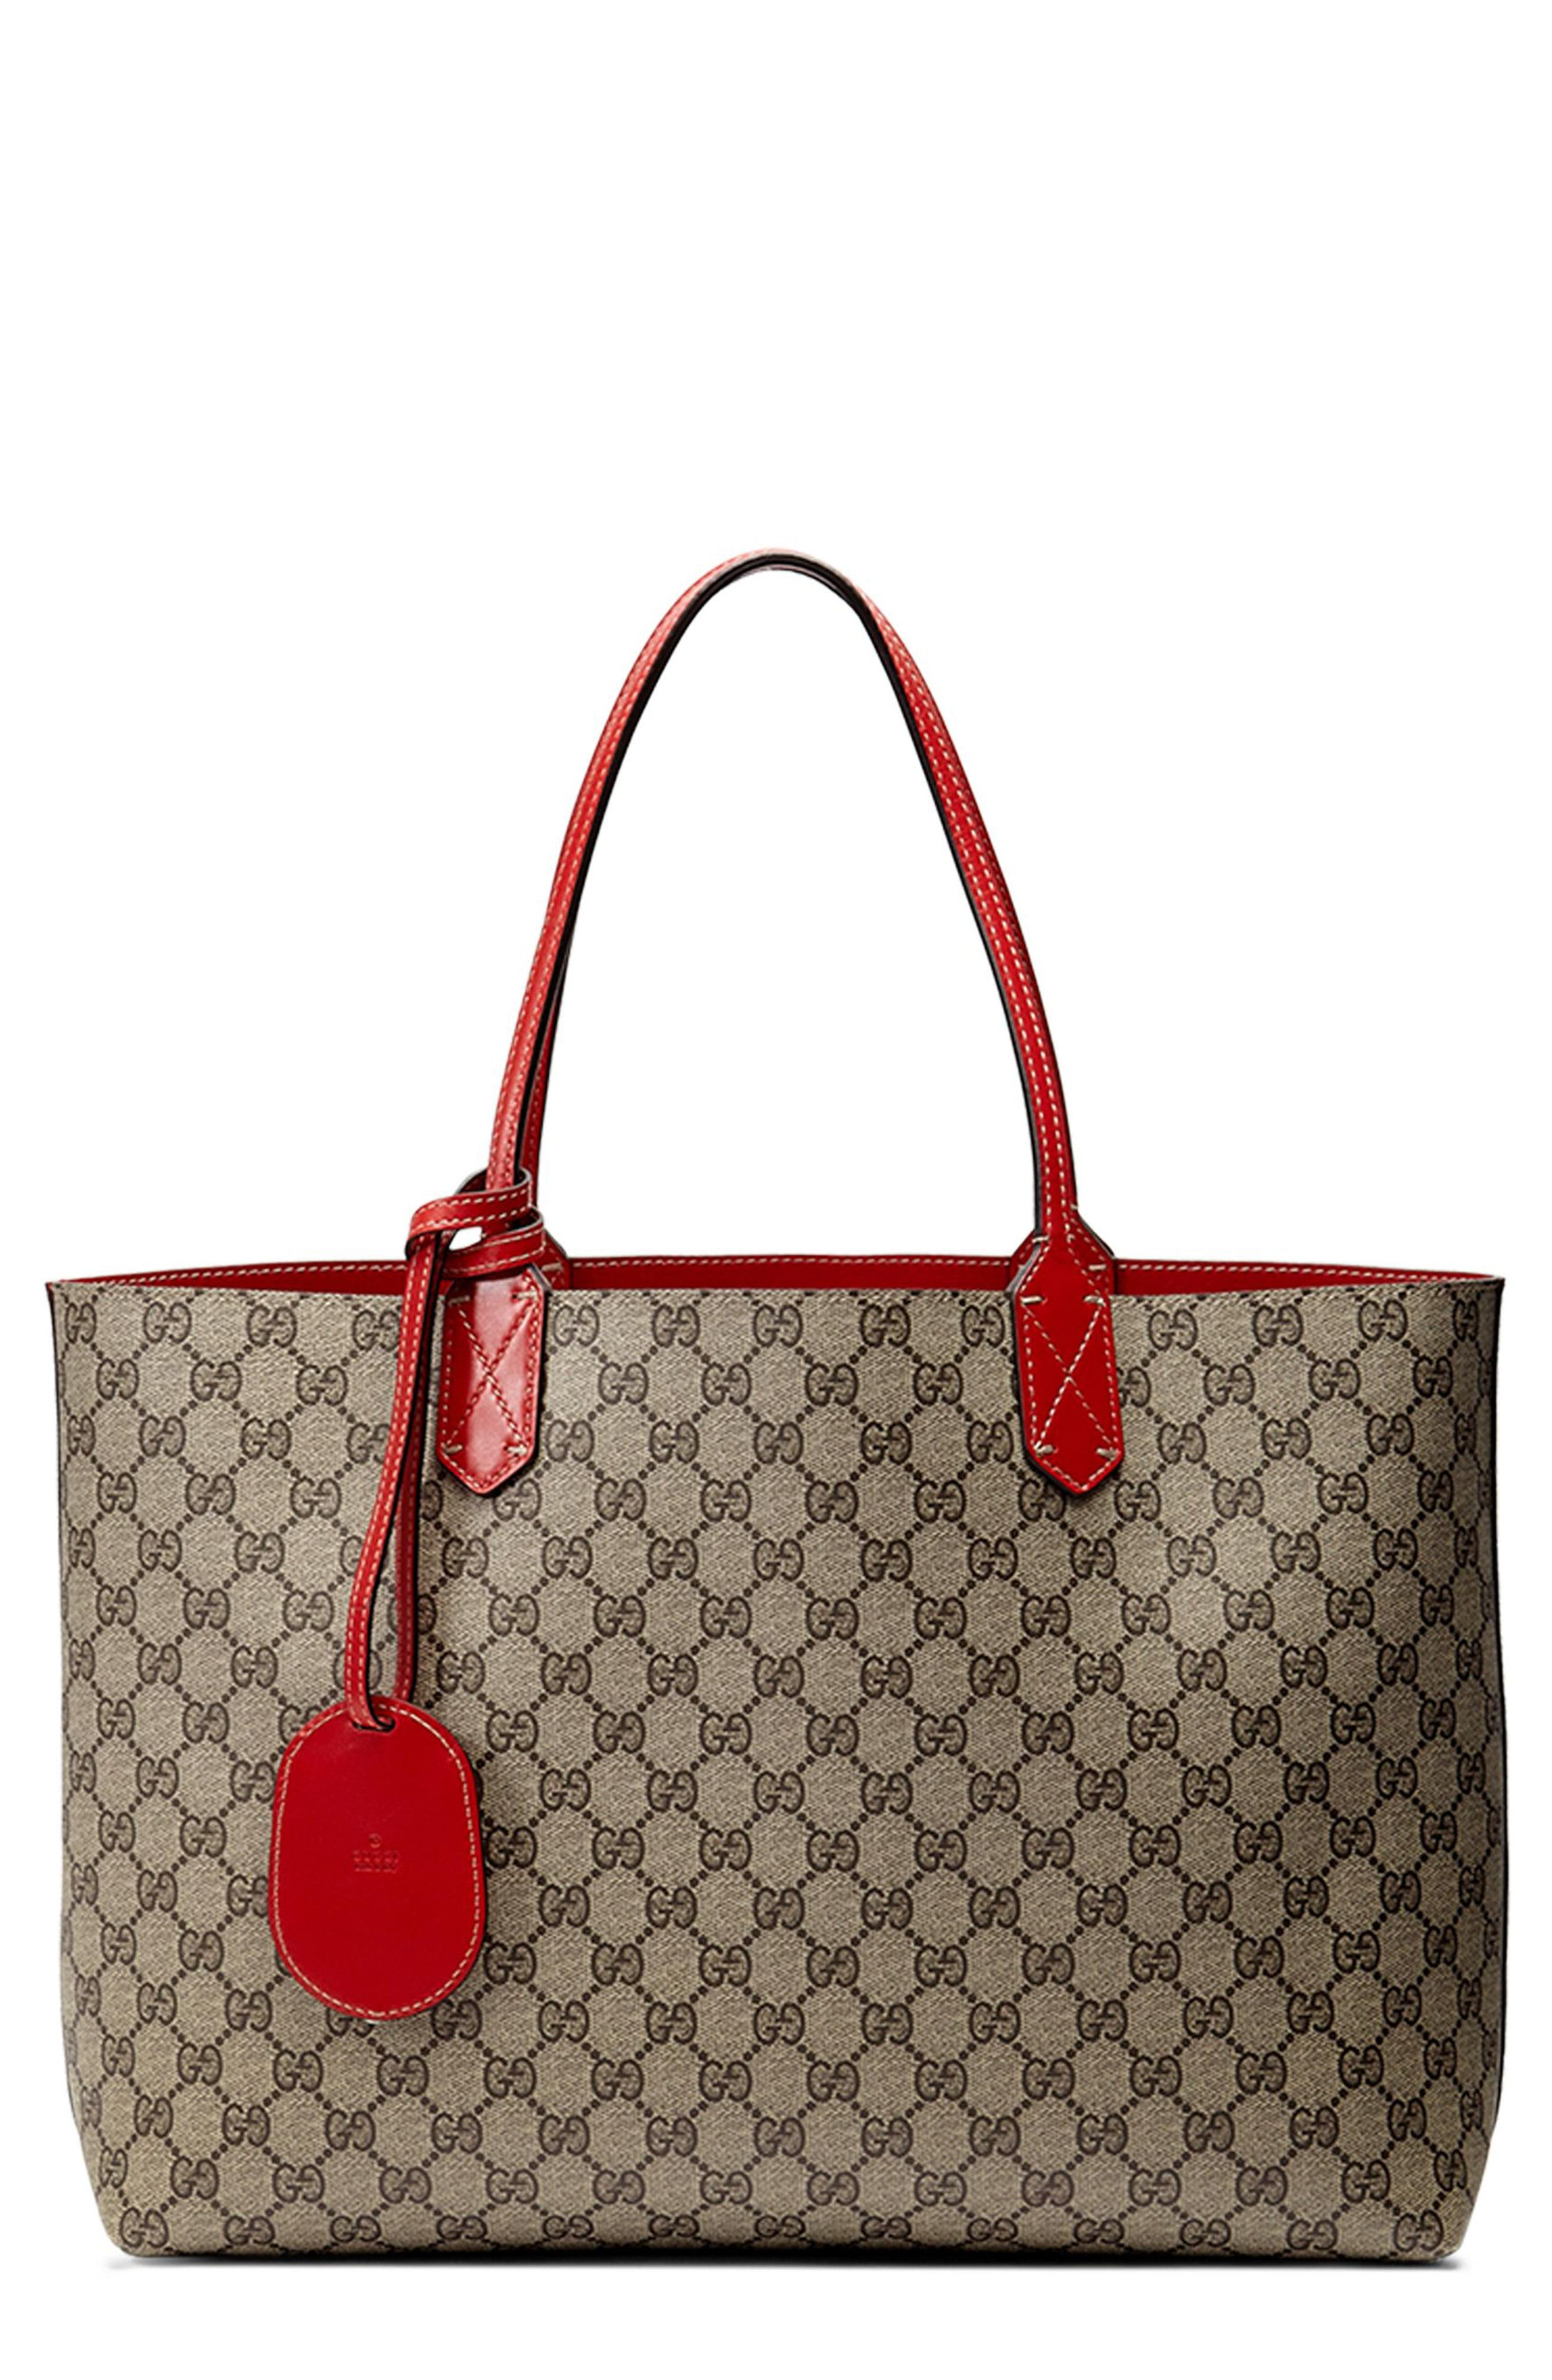 d62a241f60a2 Gucci - Brown Medium Turnaround Reversible Leather Tote - Lyst. View  fullscreen